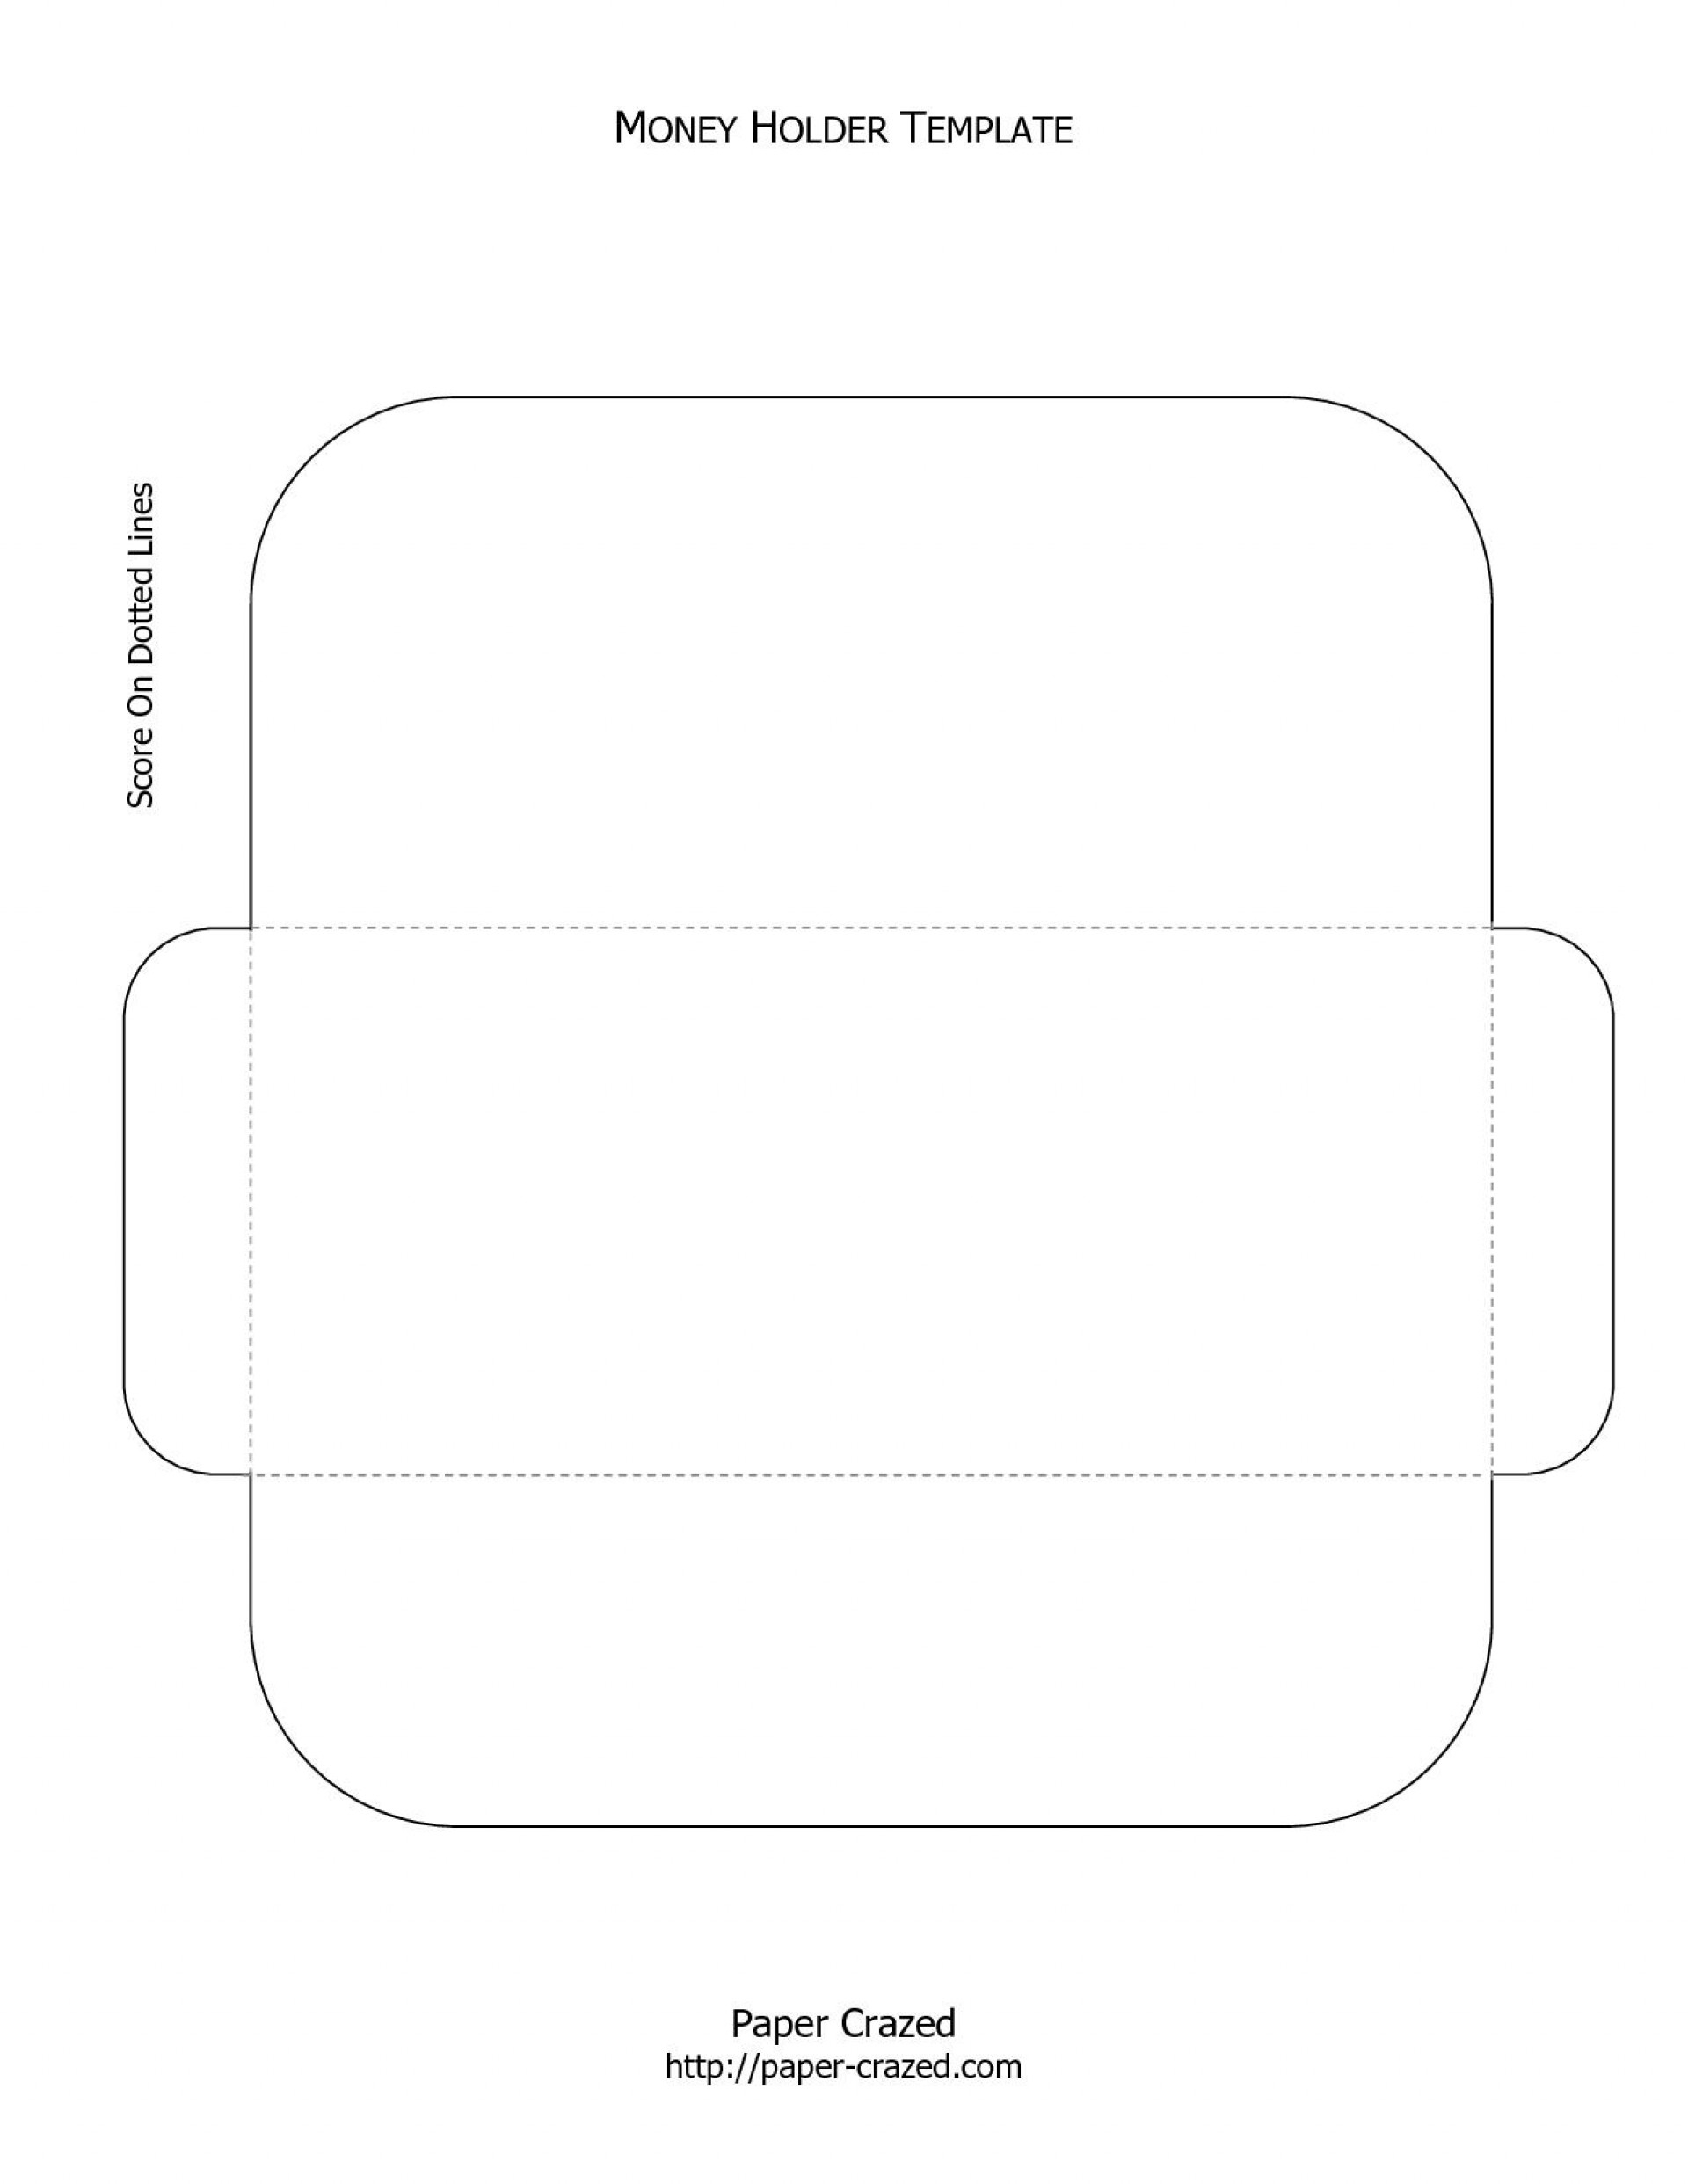 007 Gift Card Envelope Template Ideas Free Christmas Money Holder - Free Printable Christmas Money Holders